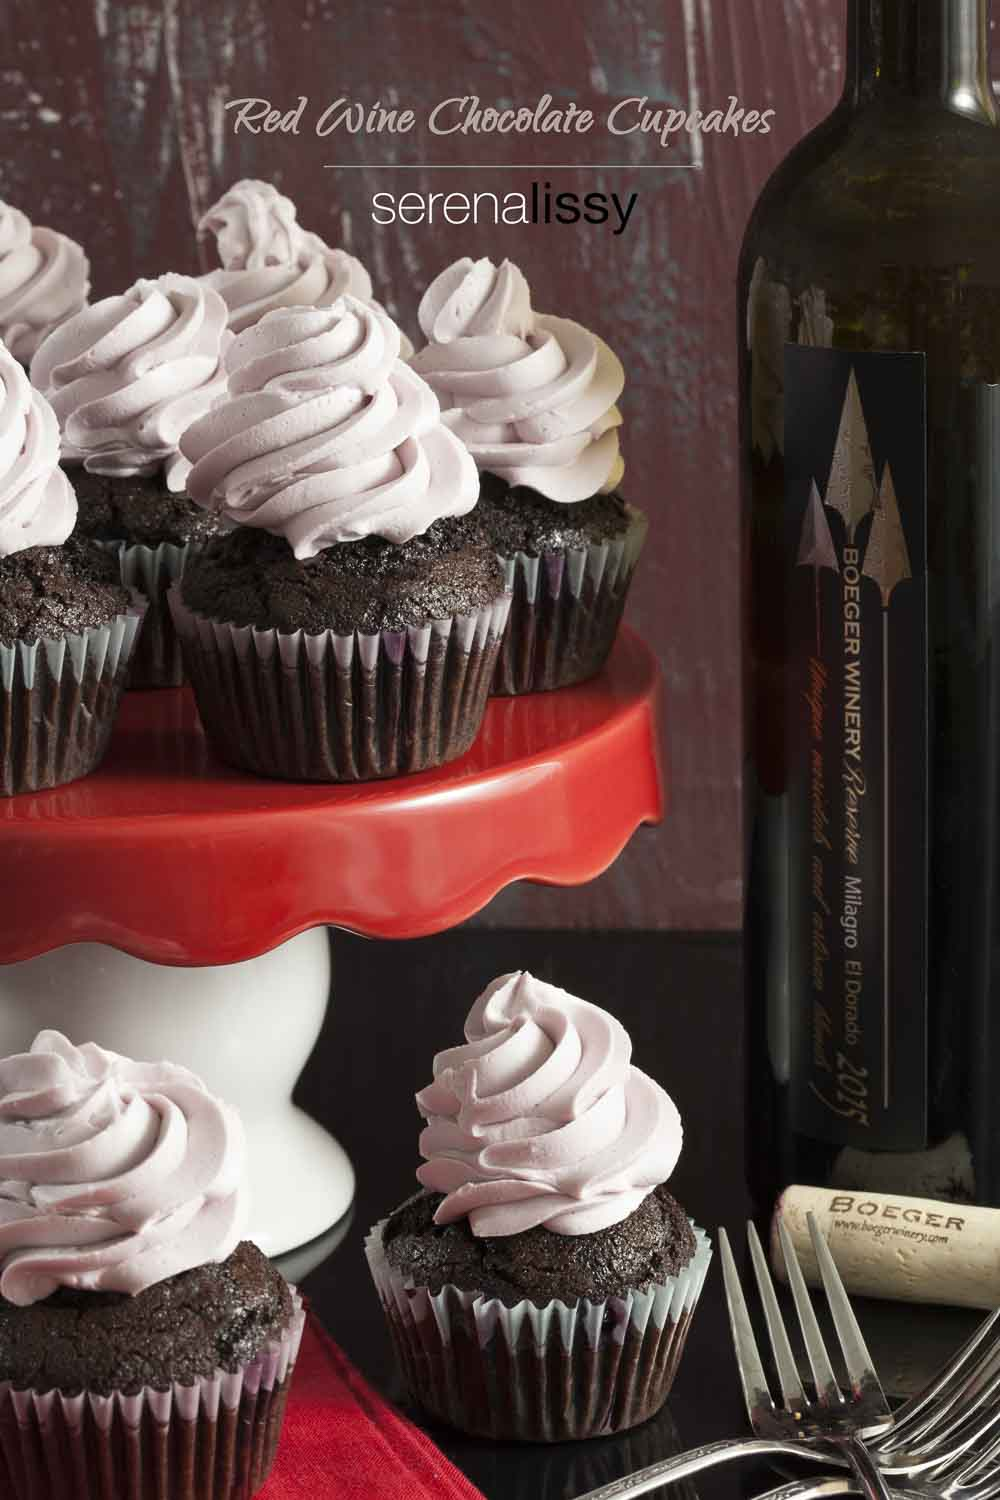 Red Wine Chocolate Cupcakes are infused with a red wine reductions for a rich and flavorful cupcake that's perfect for any celebration.